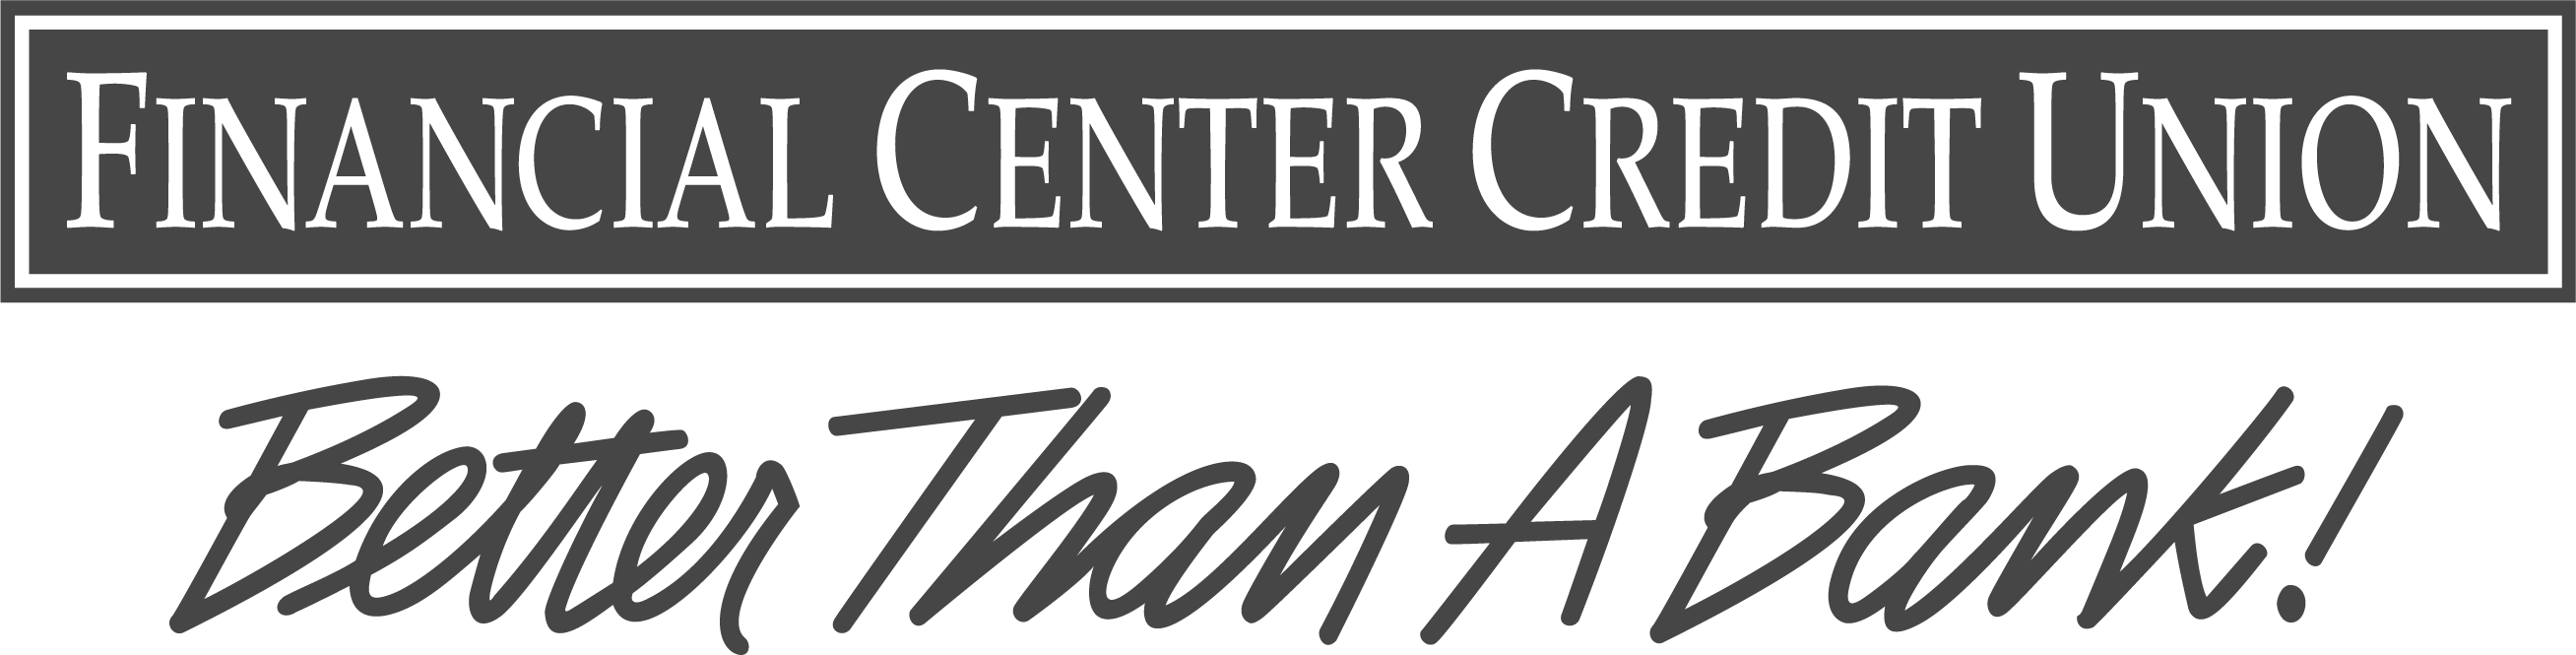 Financial Center Credit Union.png